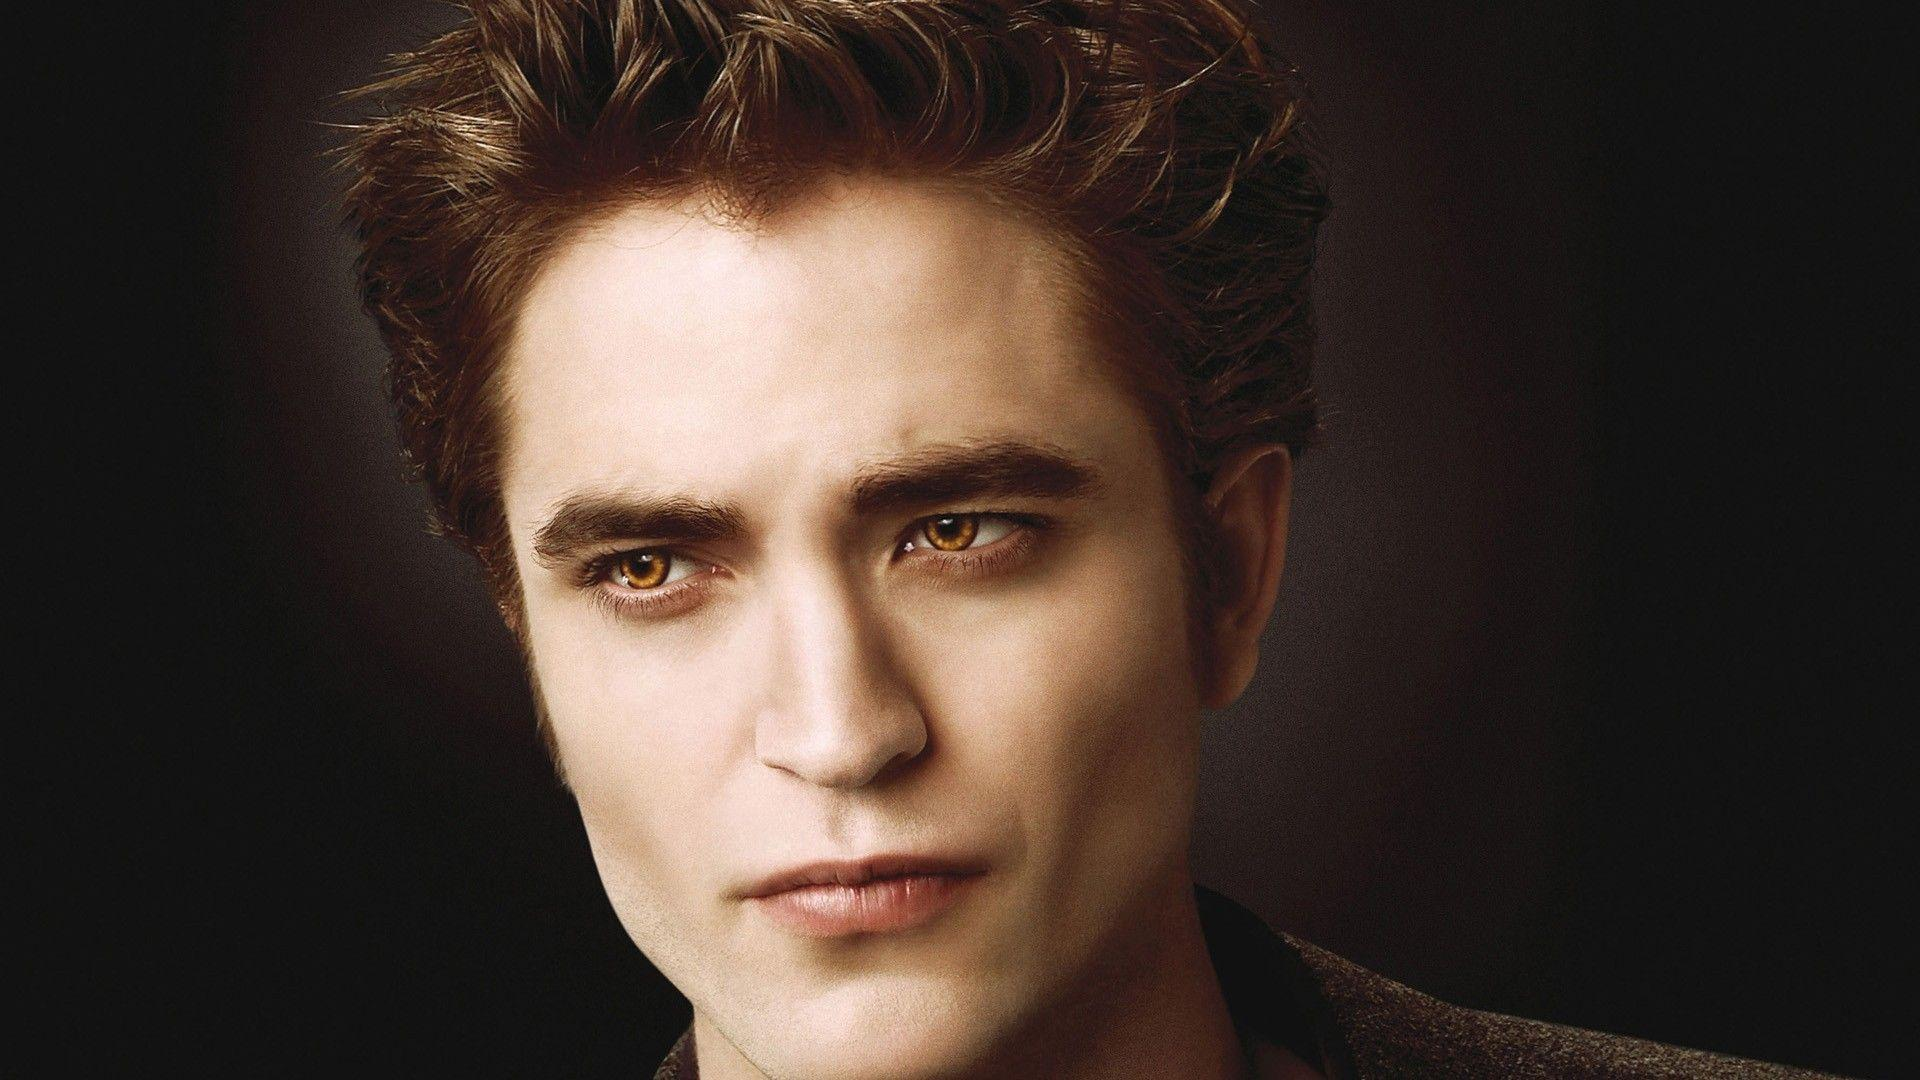 Twilight Wallpapers Edward Cullen Wallpaper Cave